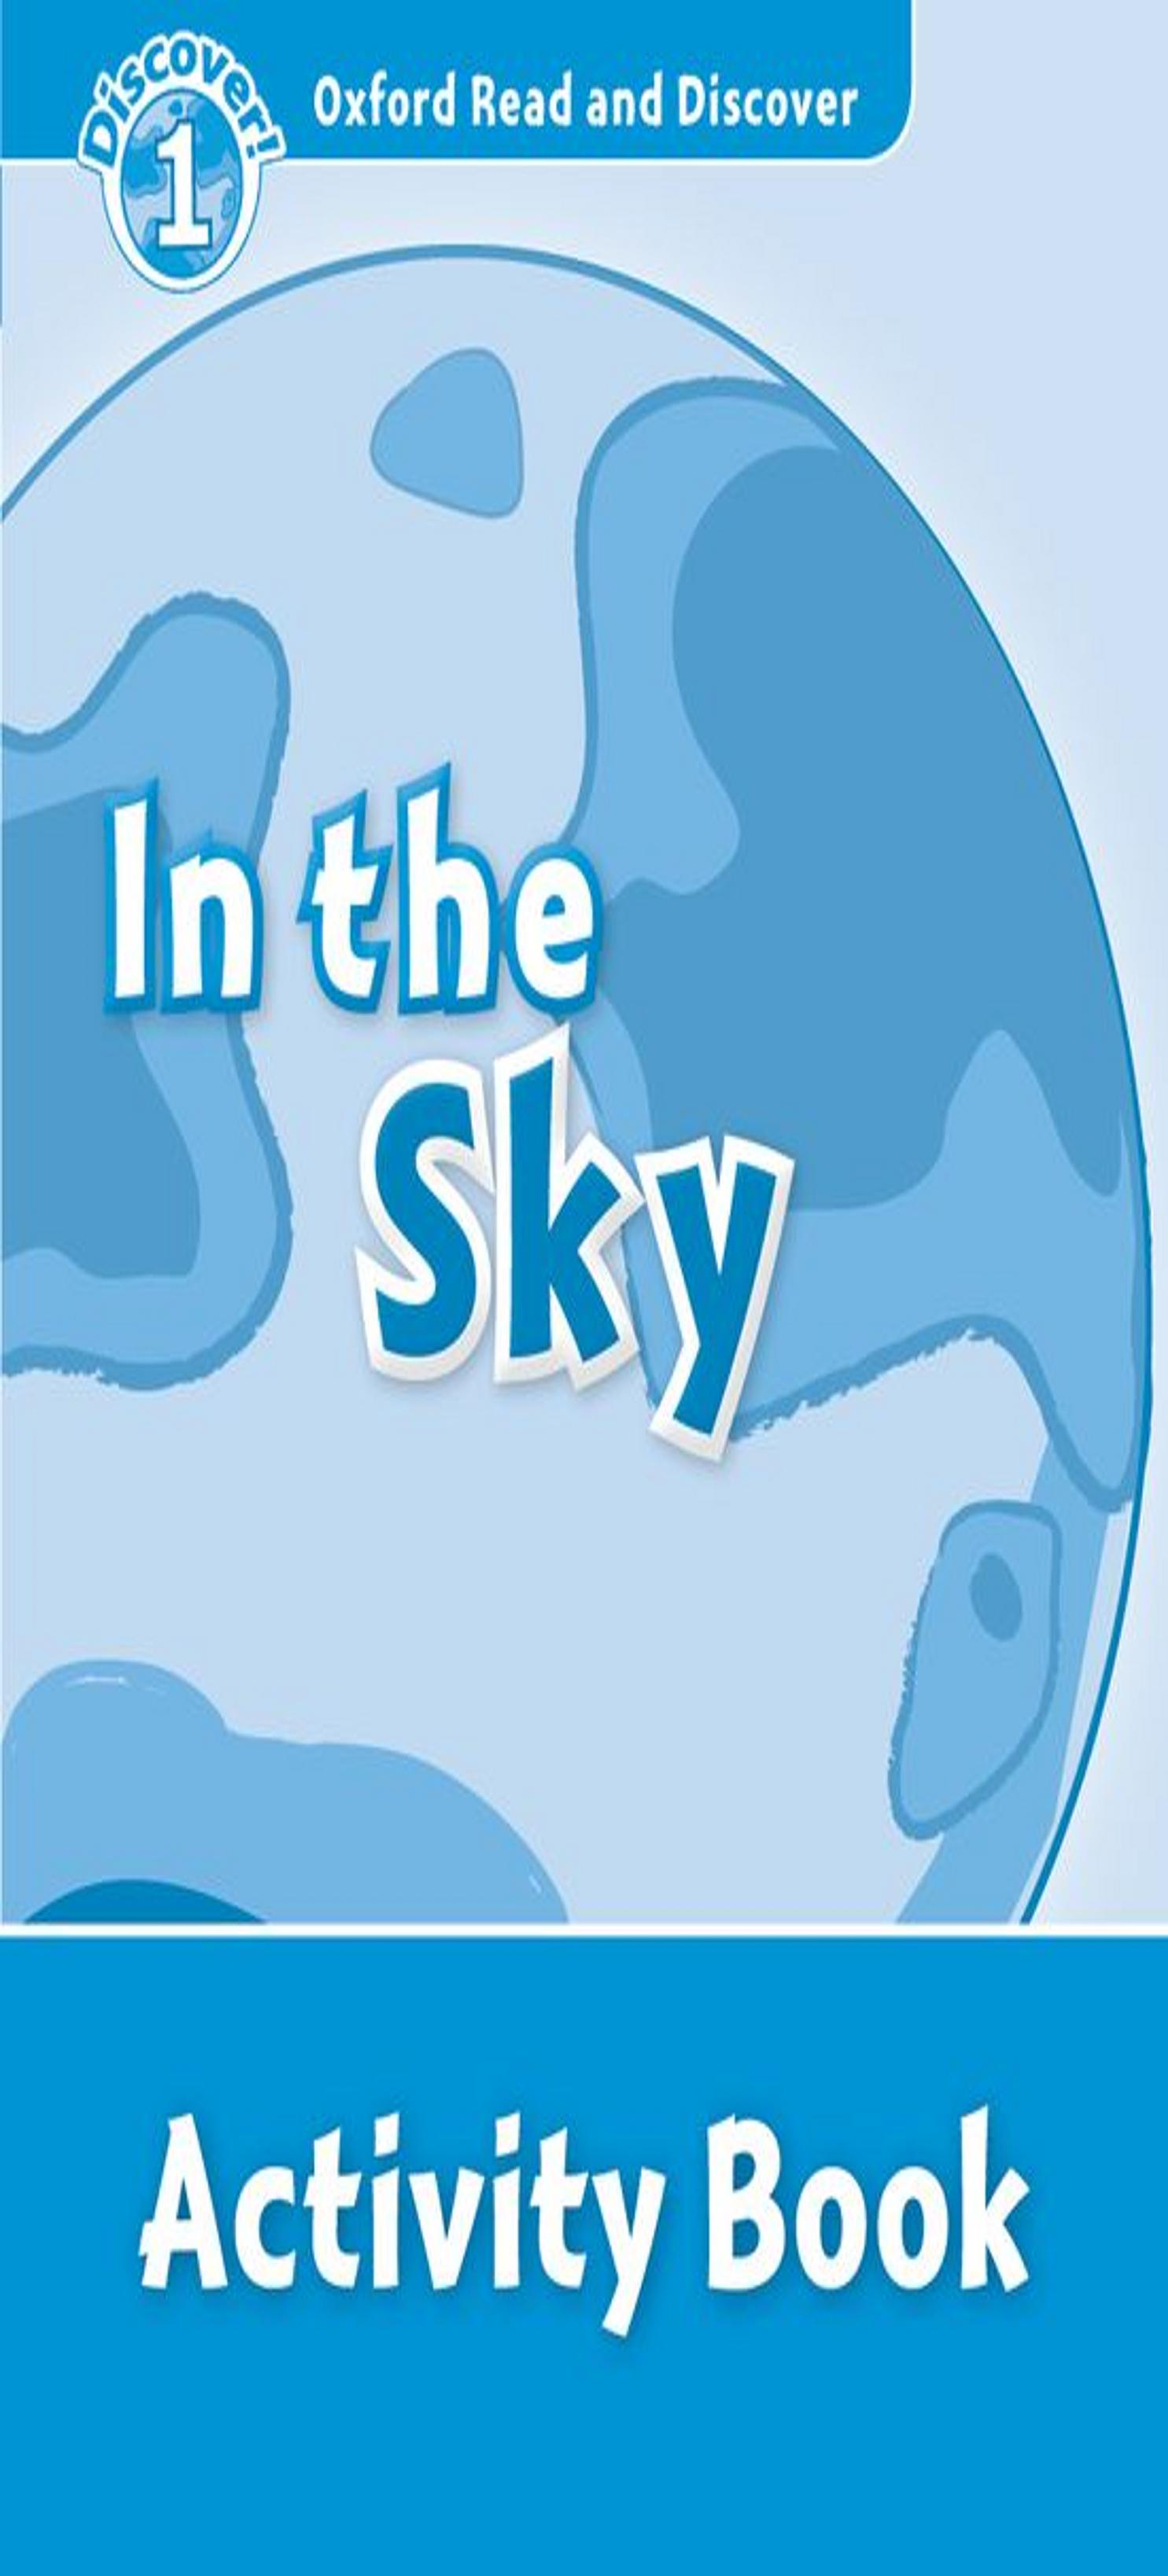 IN THE SKY Activity Book - ORAD Discover 1